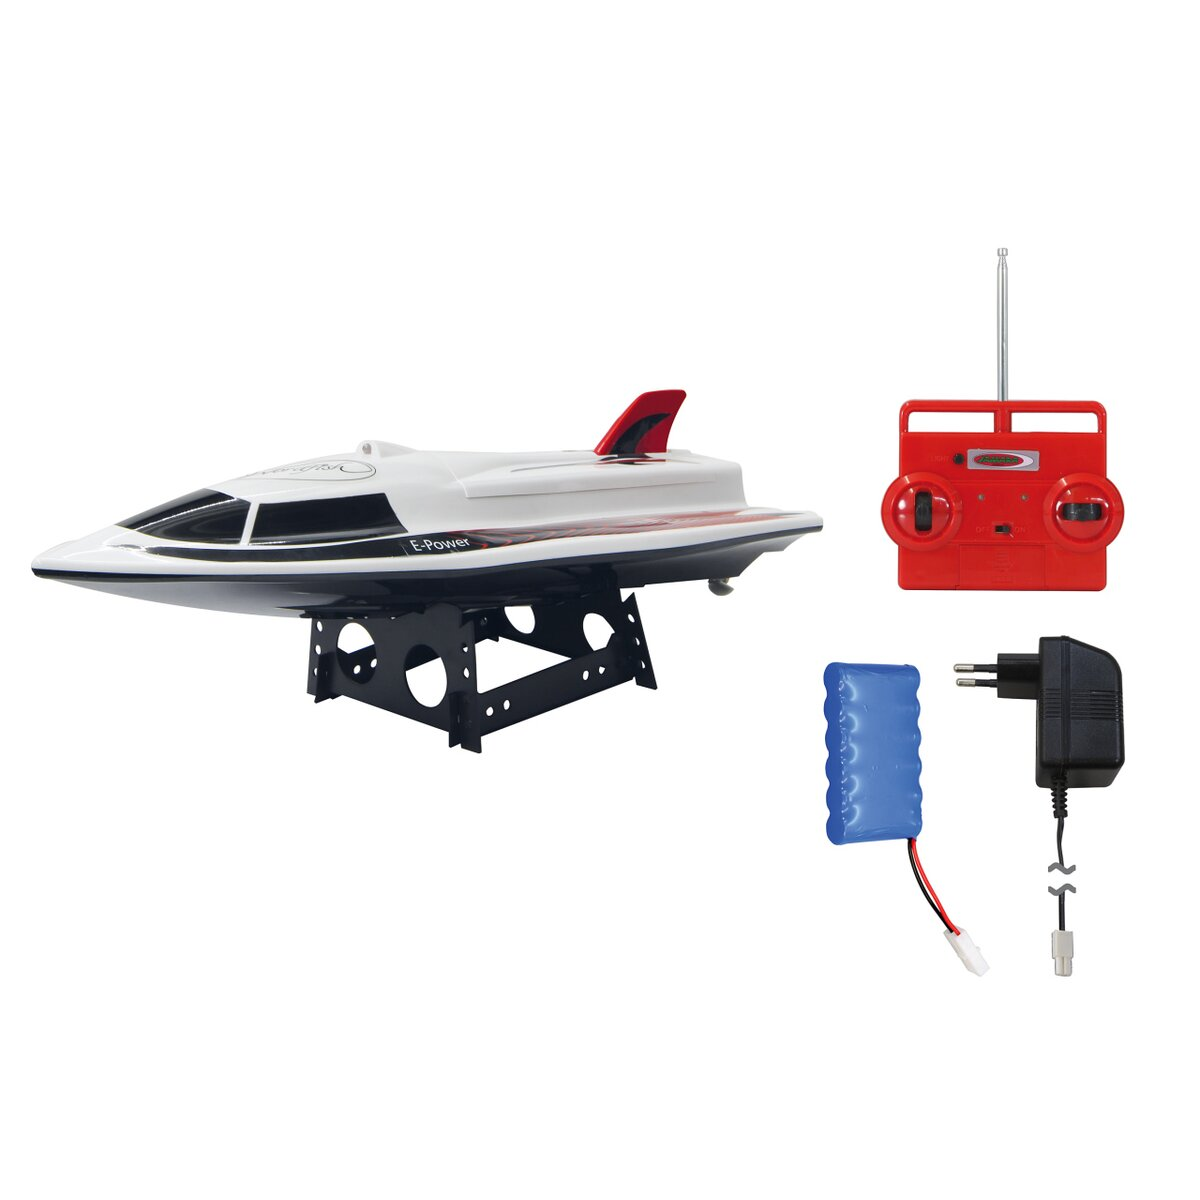 Jamara Swordfish Speedboat with LED 40Mhz